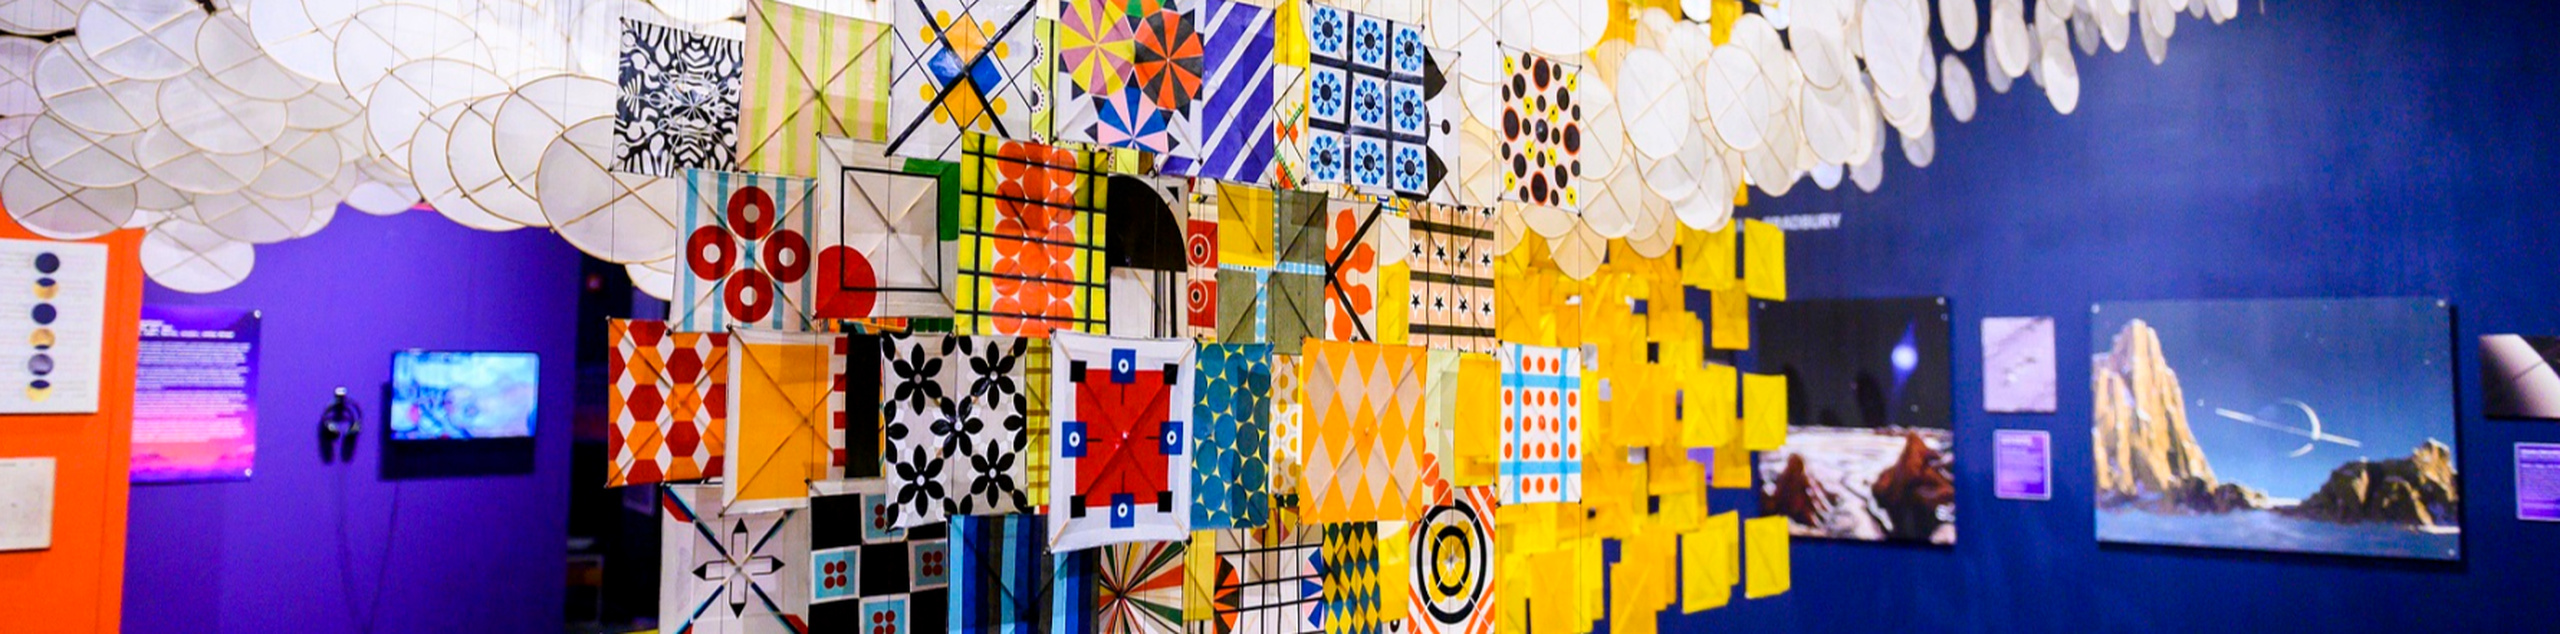 """Jacob Hashimoto's """"The Other Sun"""" at Science Museum Oklahoma"""